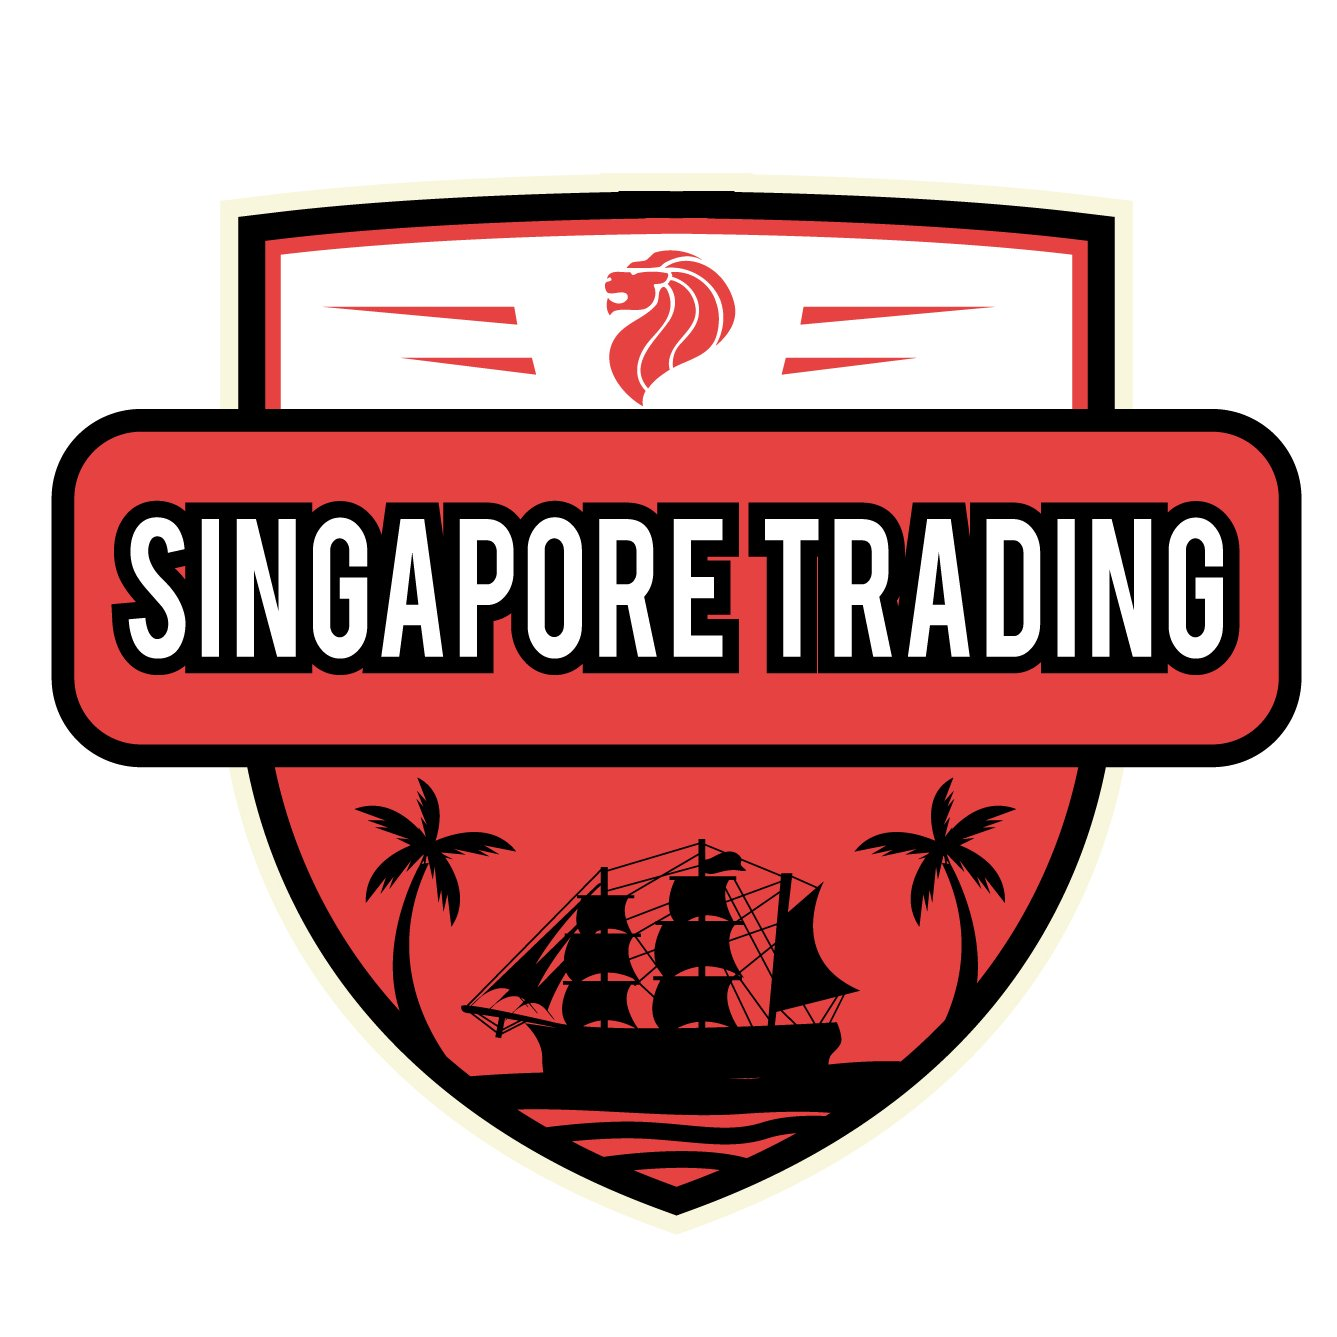 Famous forex traders in singapore